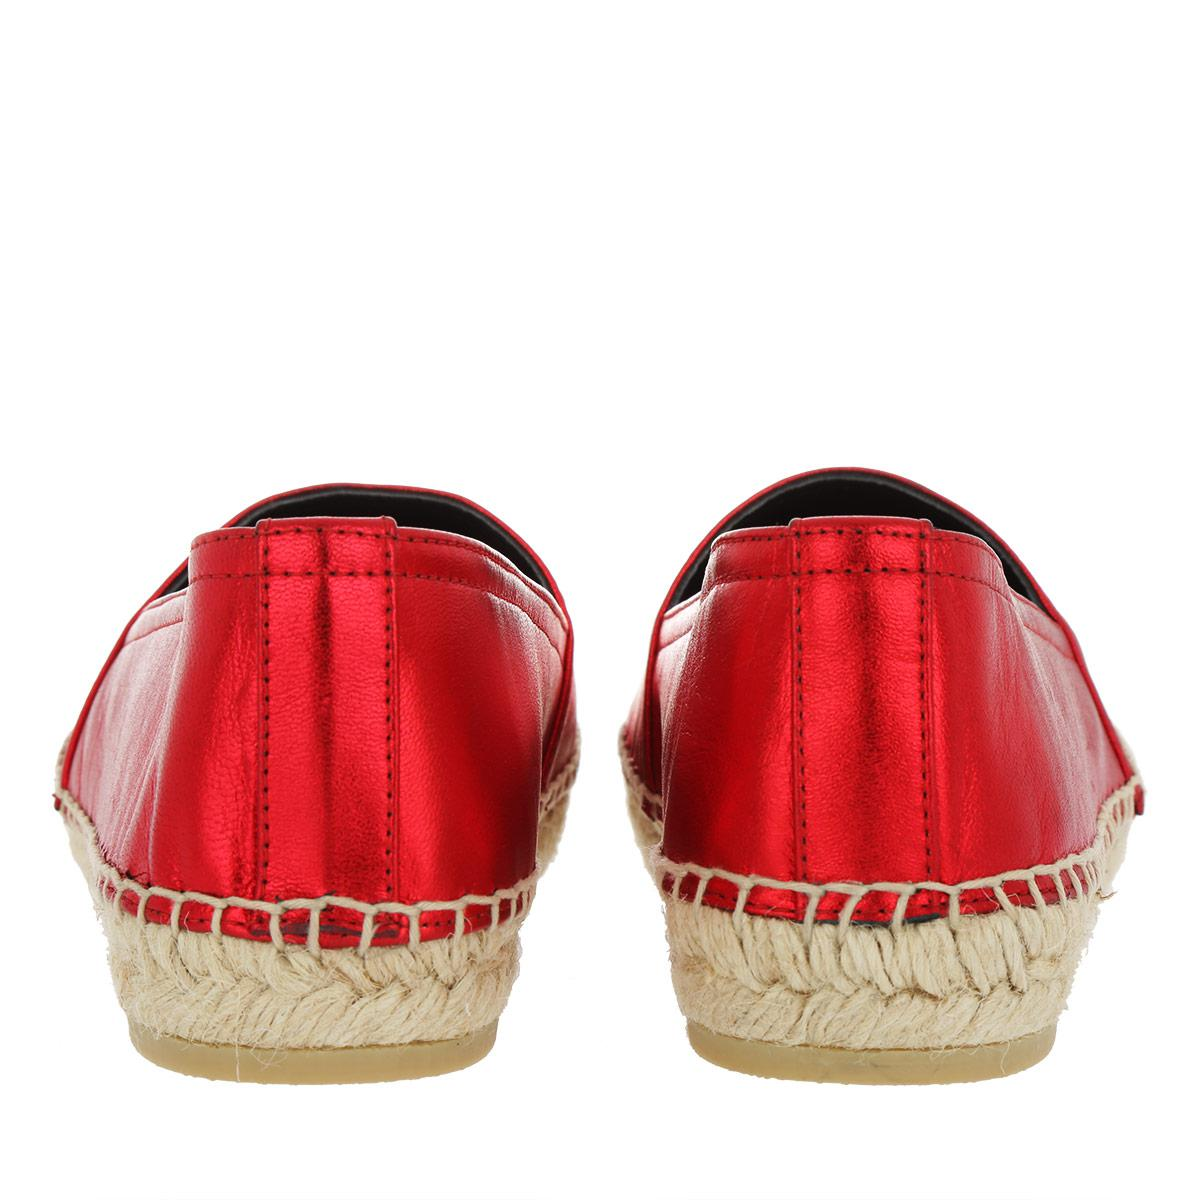 e3597fea5 Saint Laurent Ysl Monogramme Espadrilles Leather Rosso in Red - Lyst